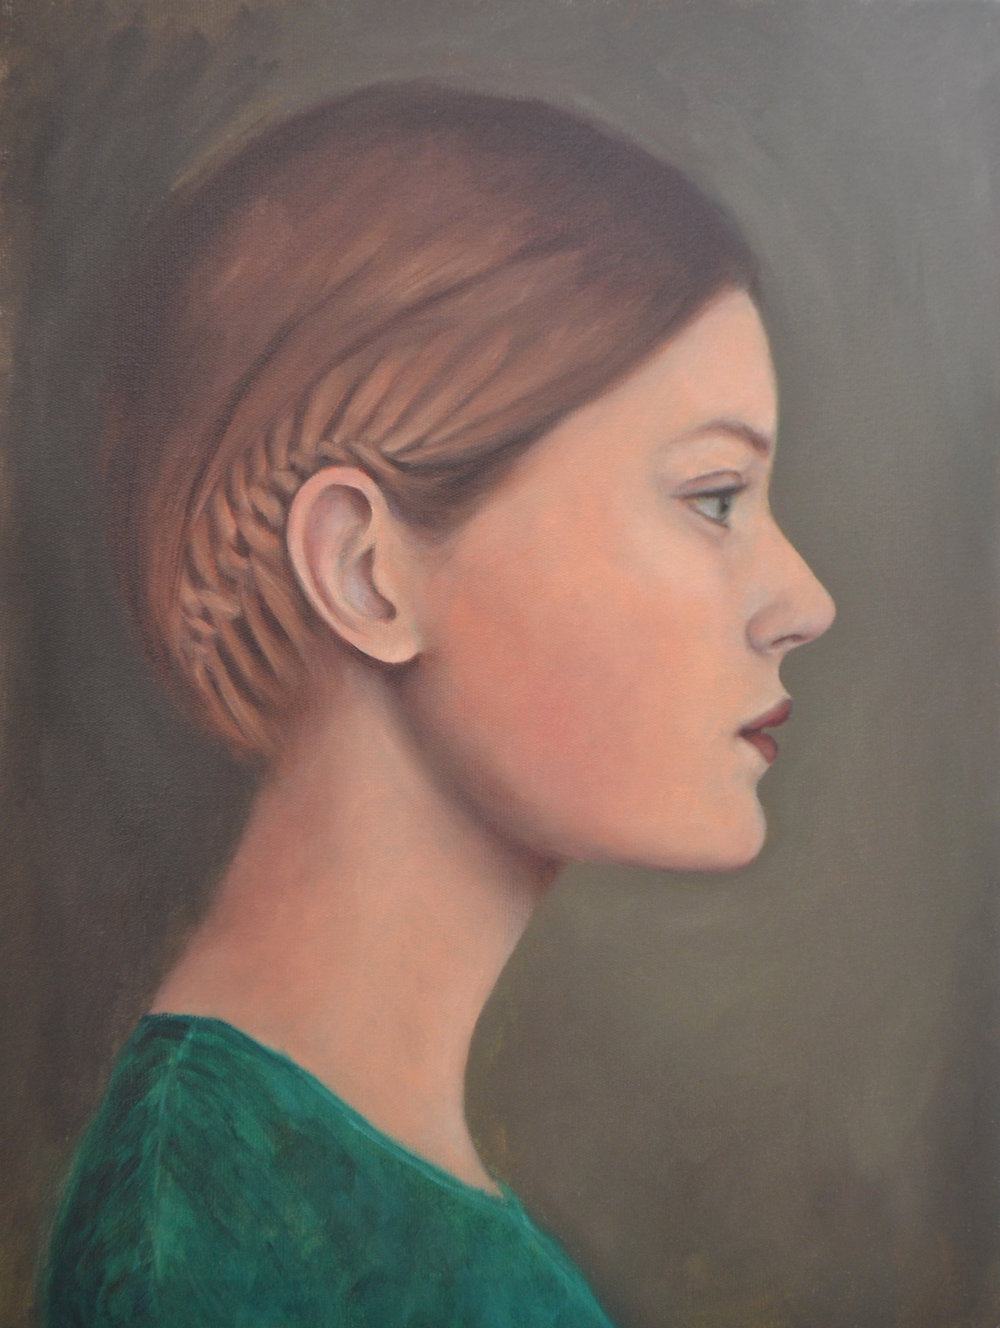 Untitled (Girl in Profile)